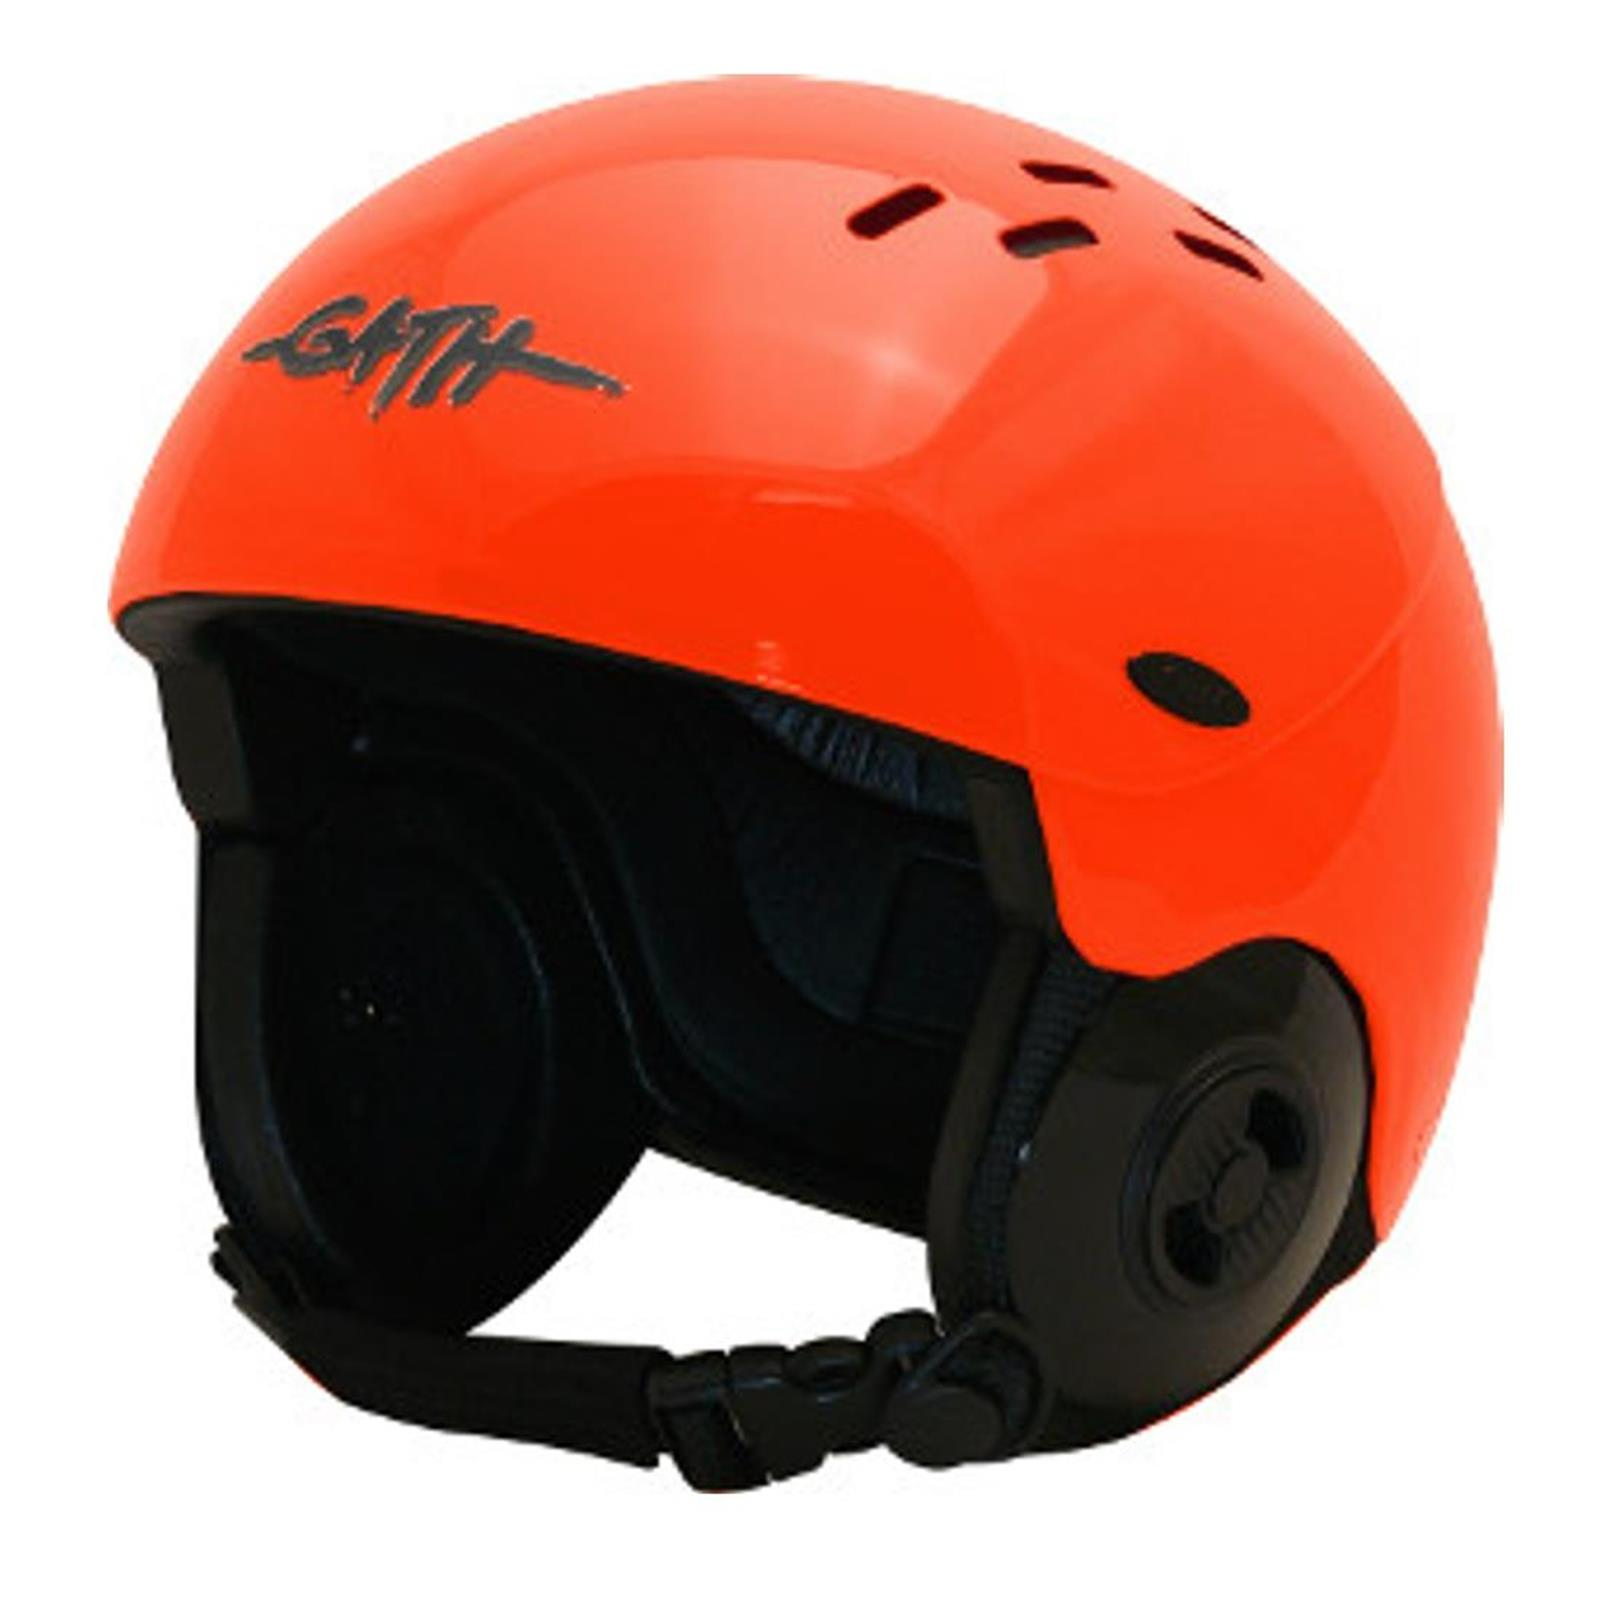 GATH Wassersport Helm GEDI Gr M Orange